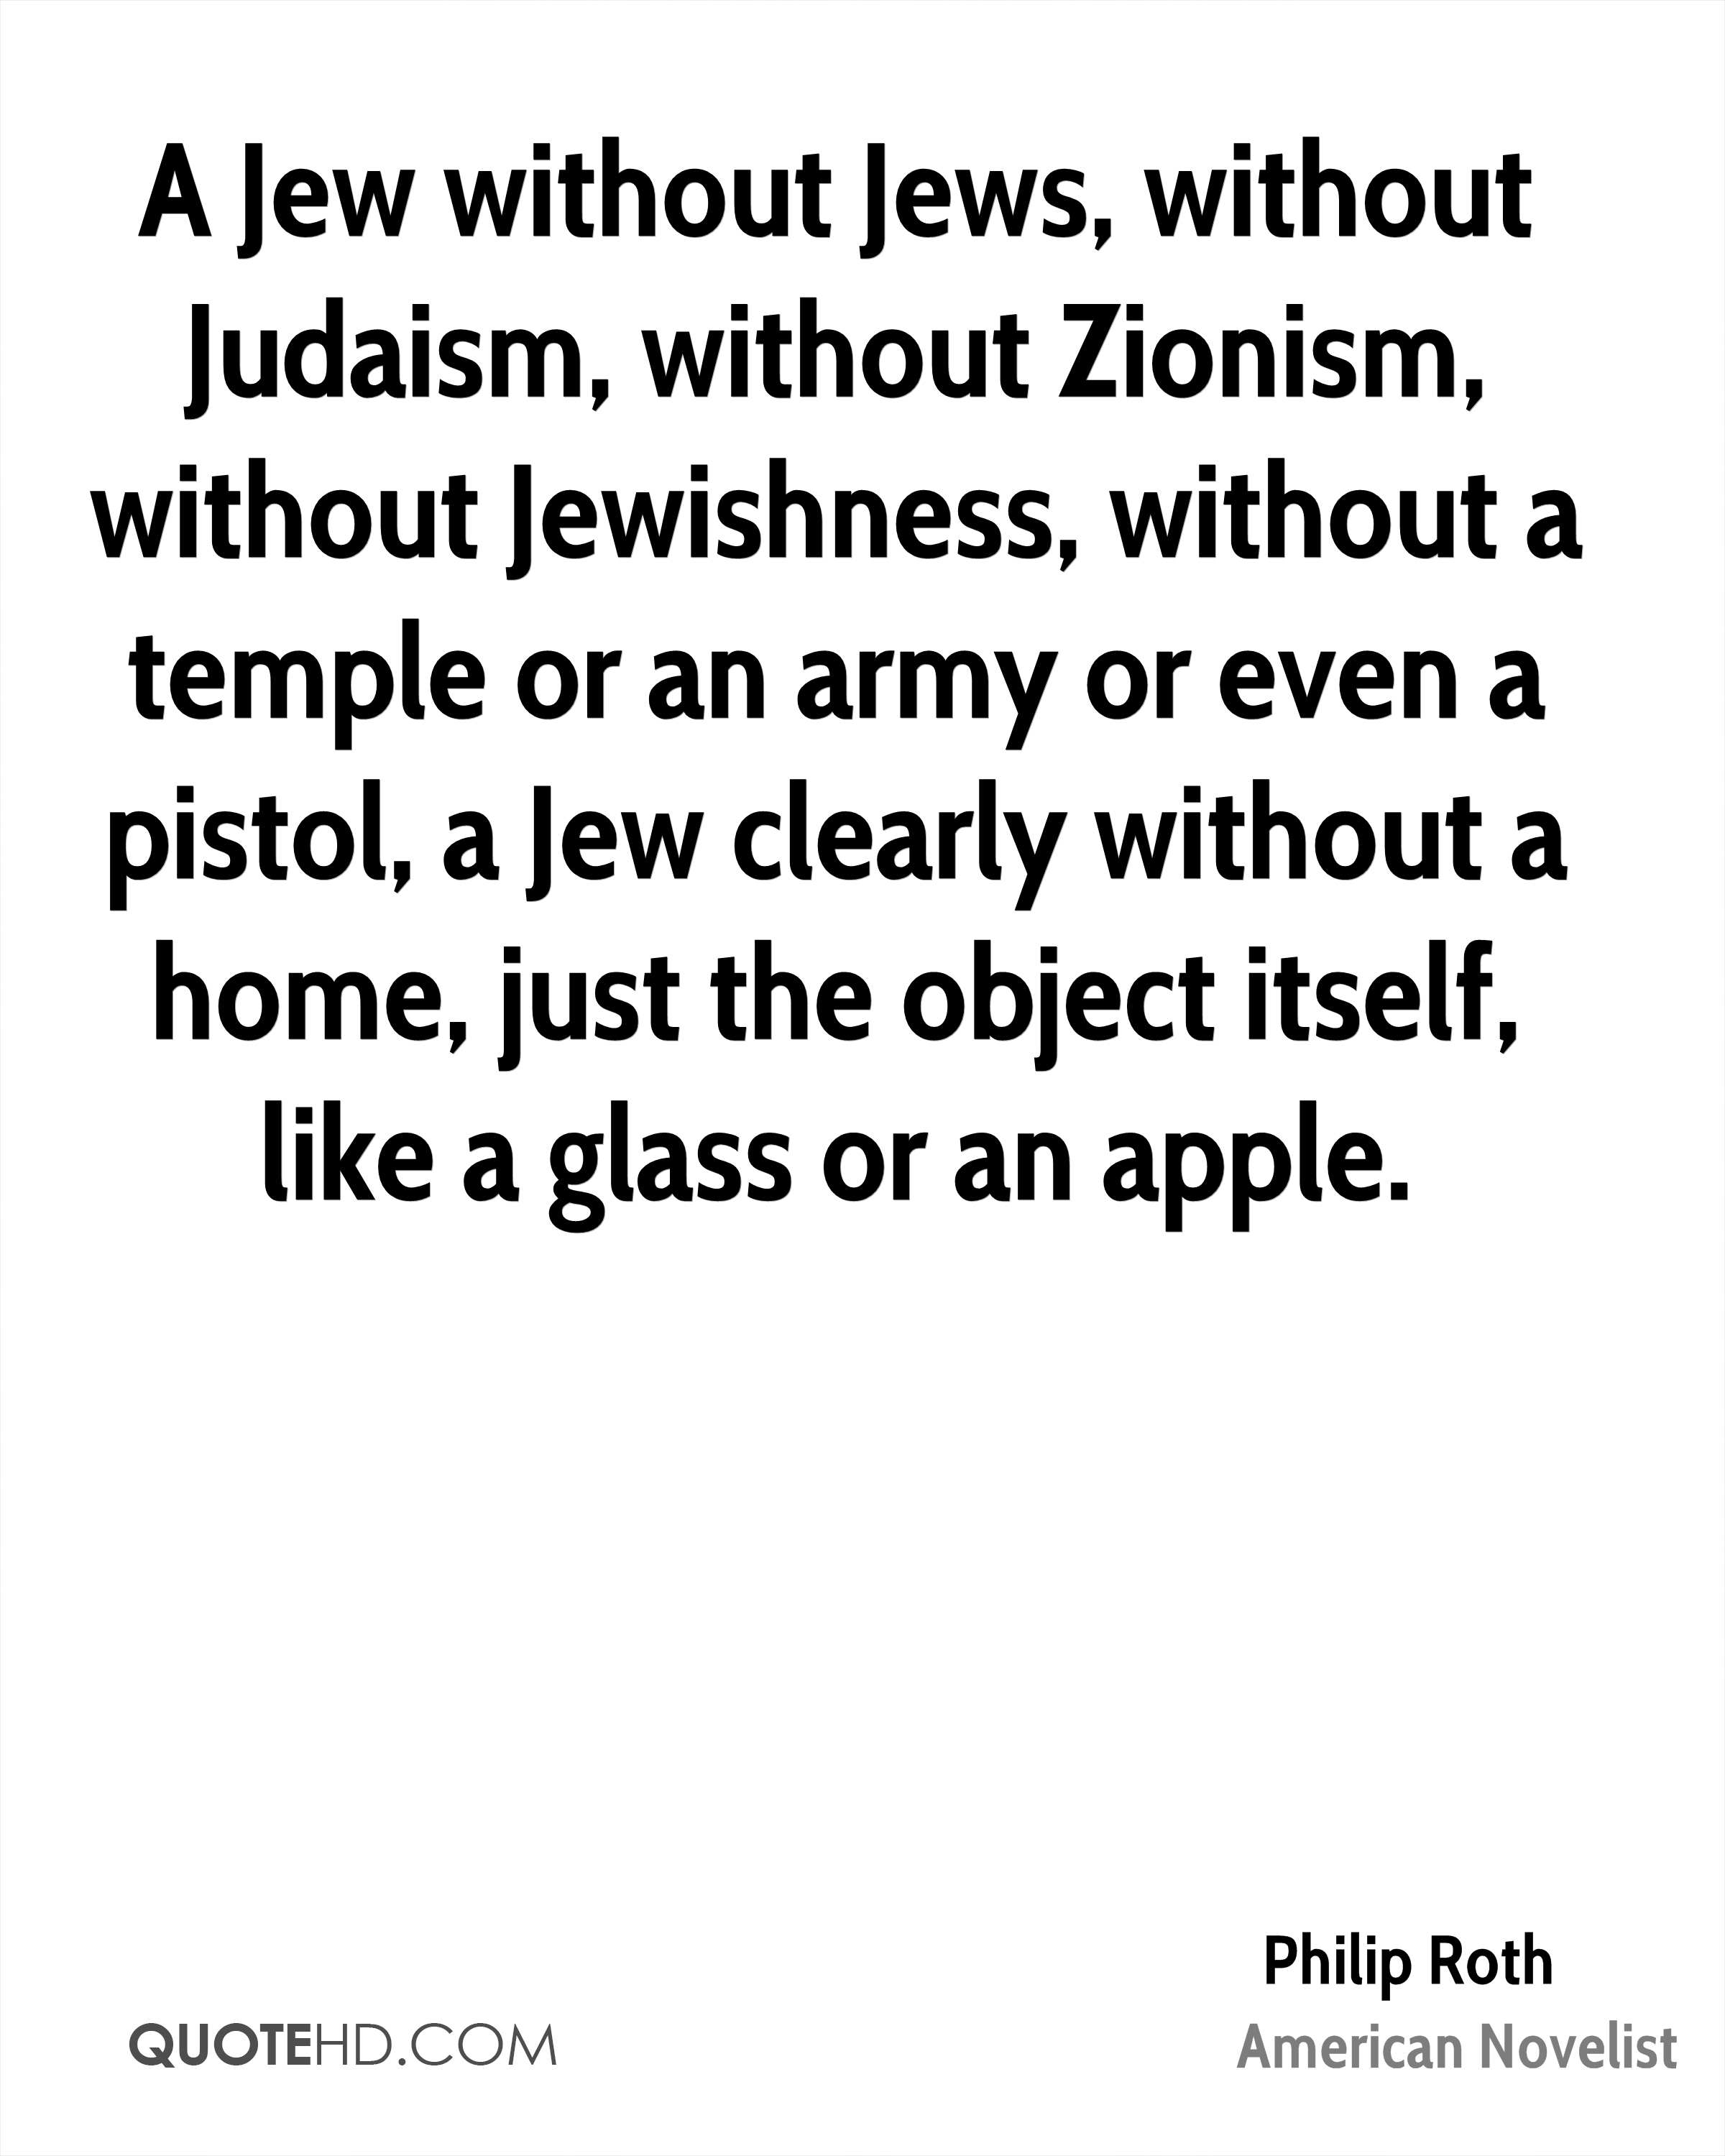 A Jew without Jews, without Judaism, without Zionism, without Jewishness, without a temple or an army or even a pistol, a Jew clearly without a home, just the object itself, like a glass or an apple.